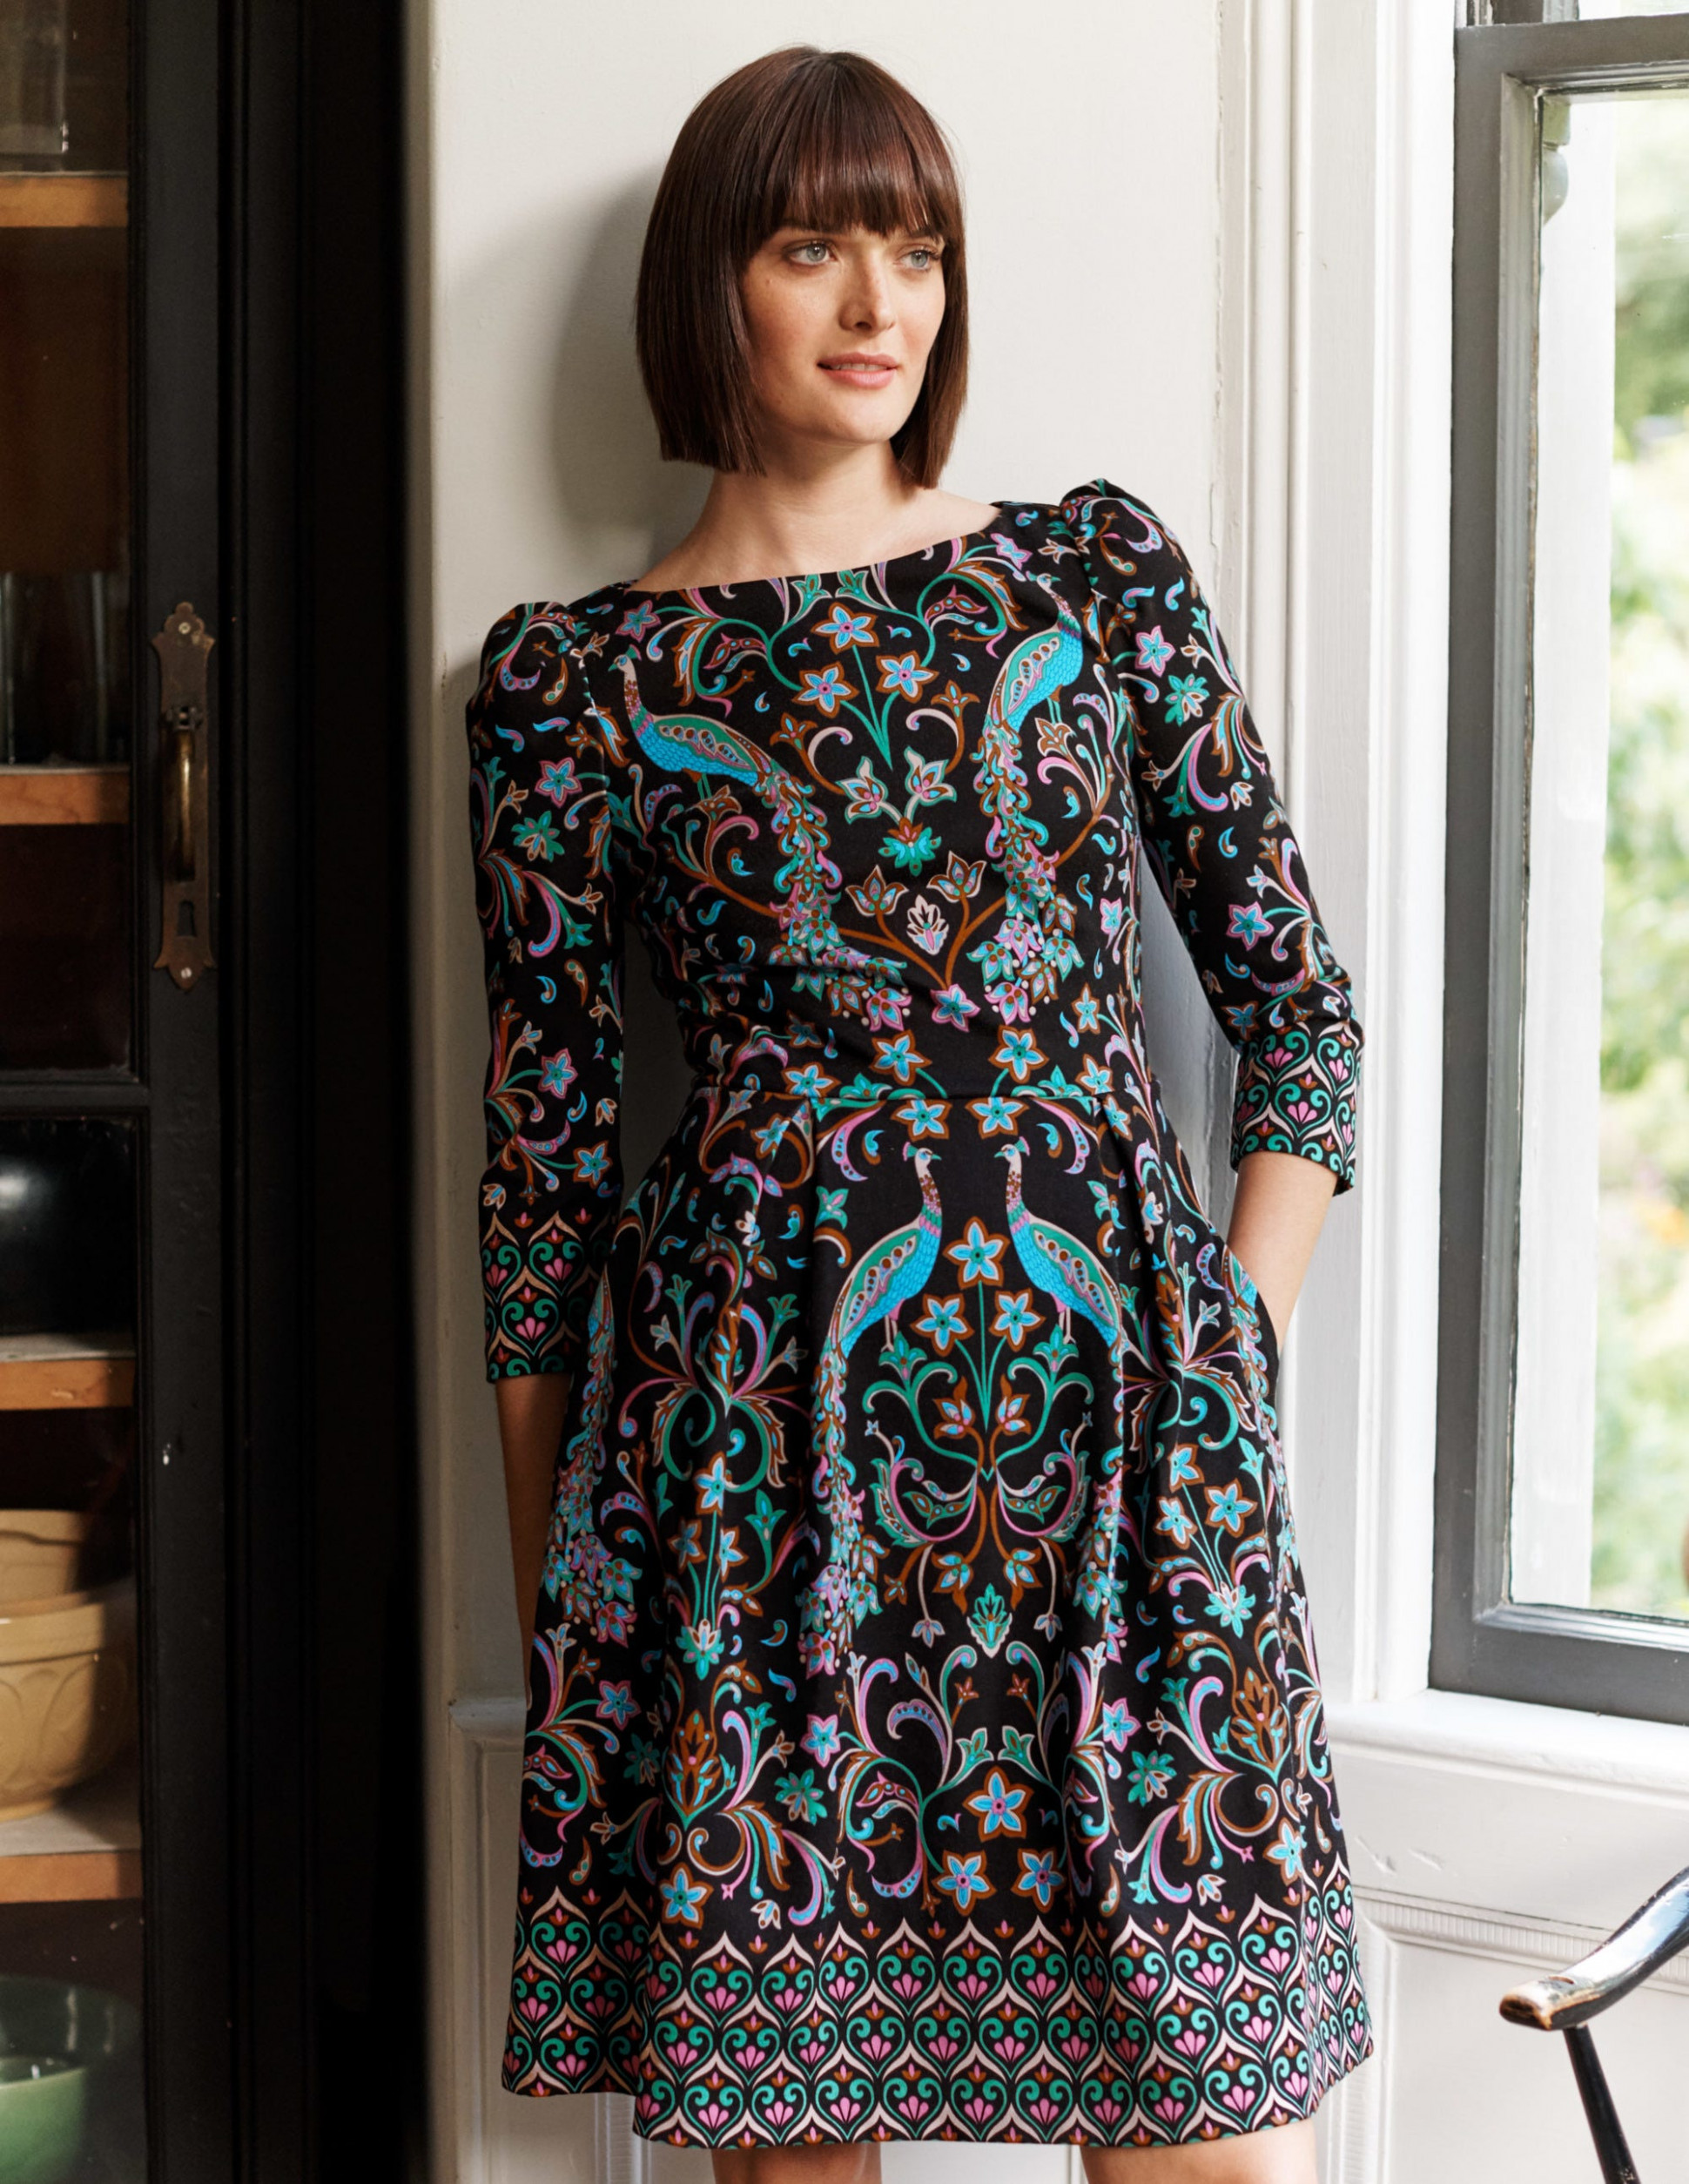 marie ponte dress black, fanciful peacock boden us kleid boden